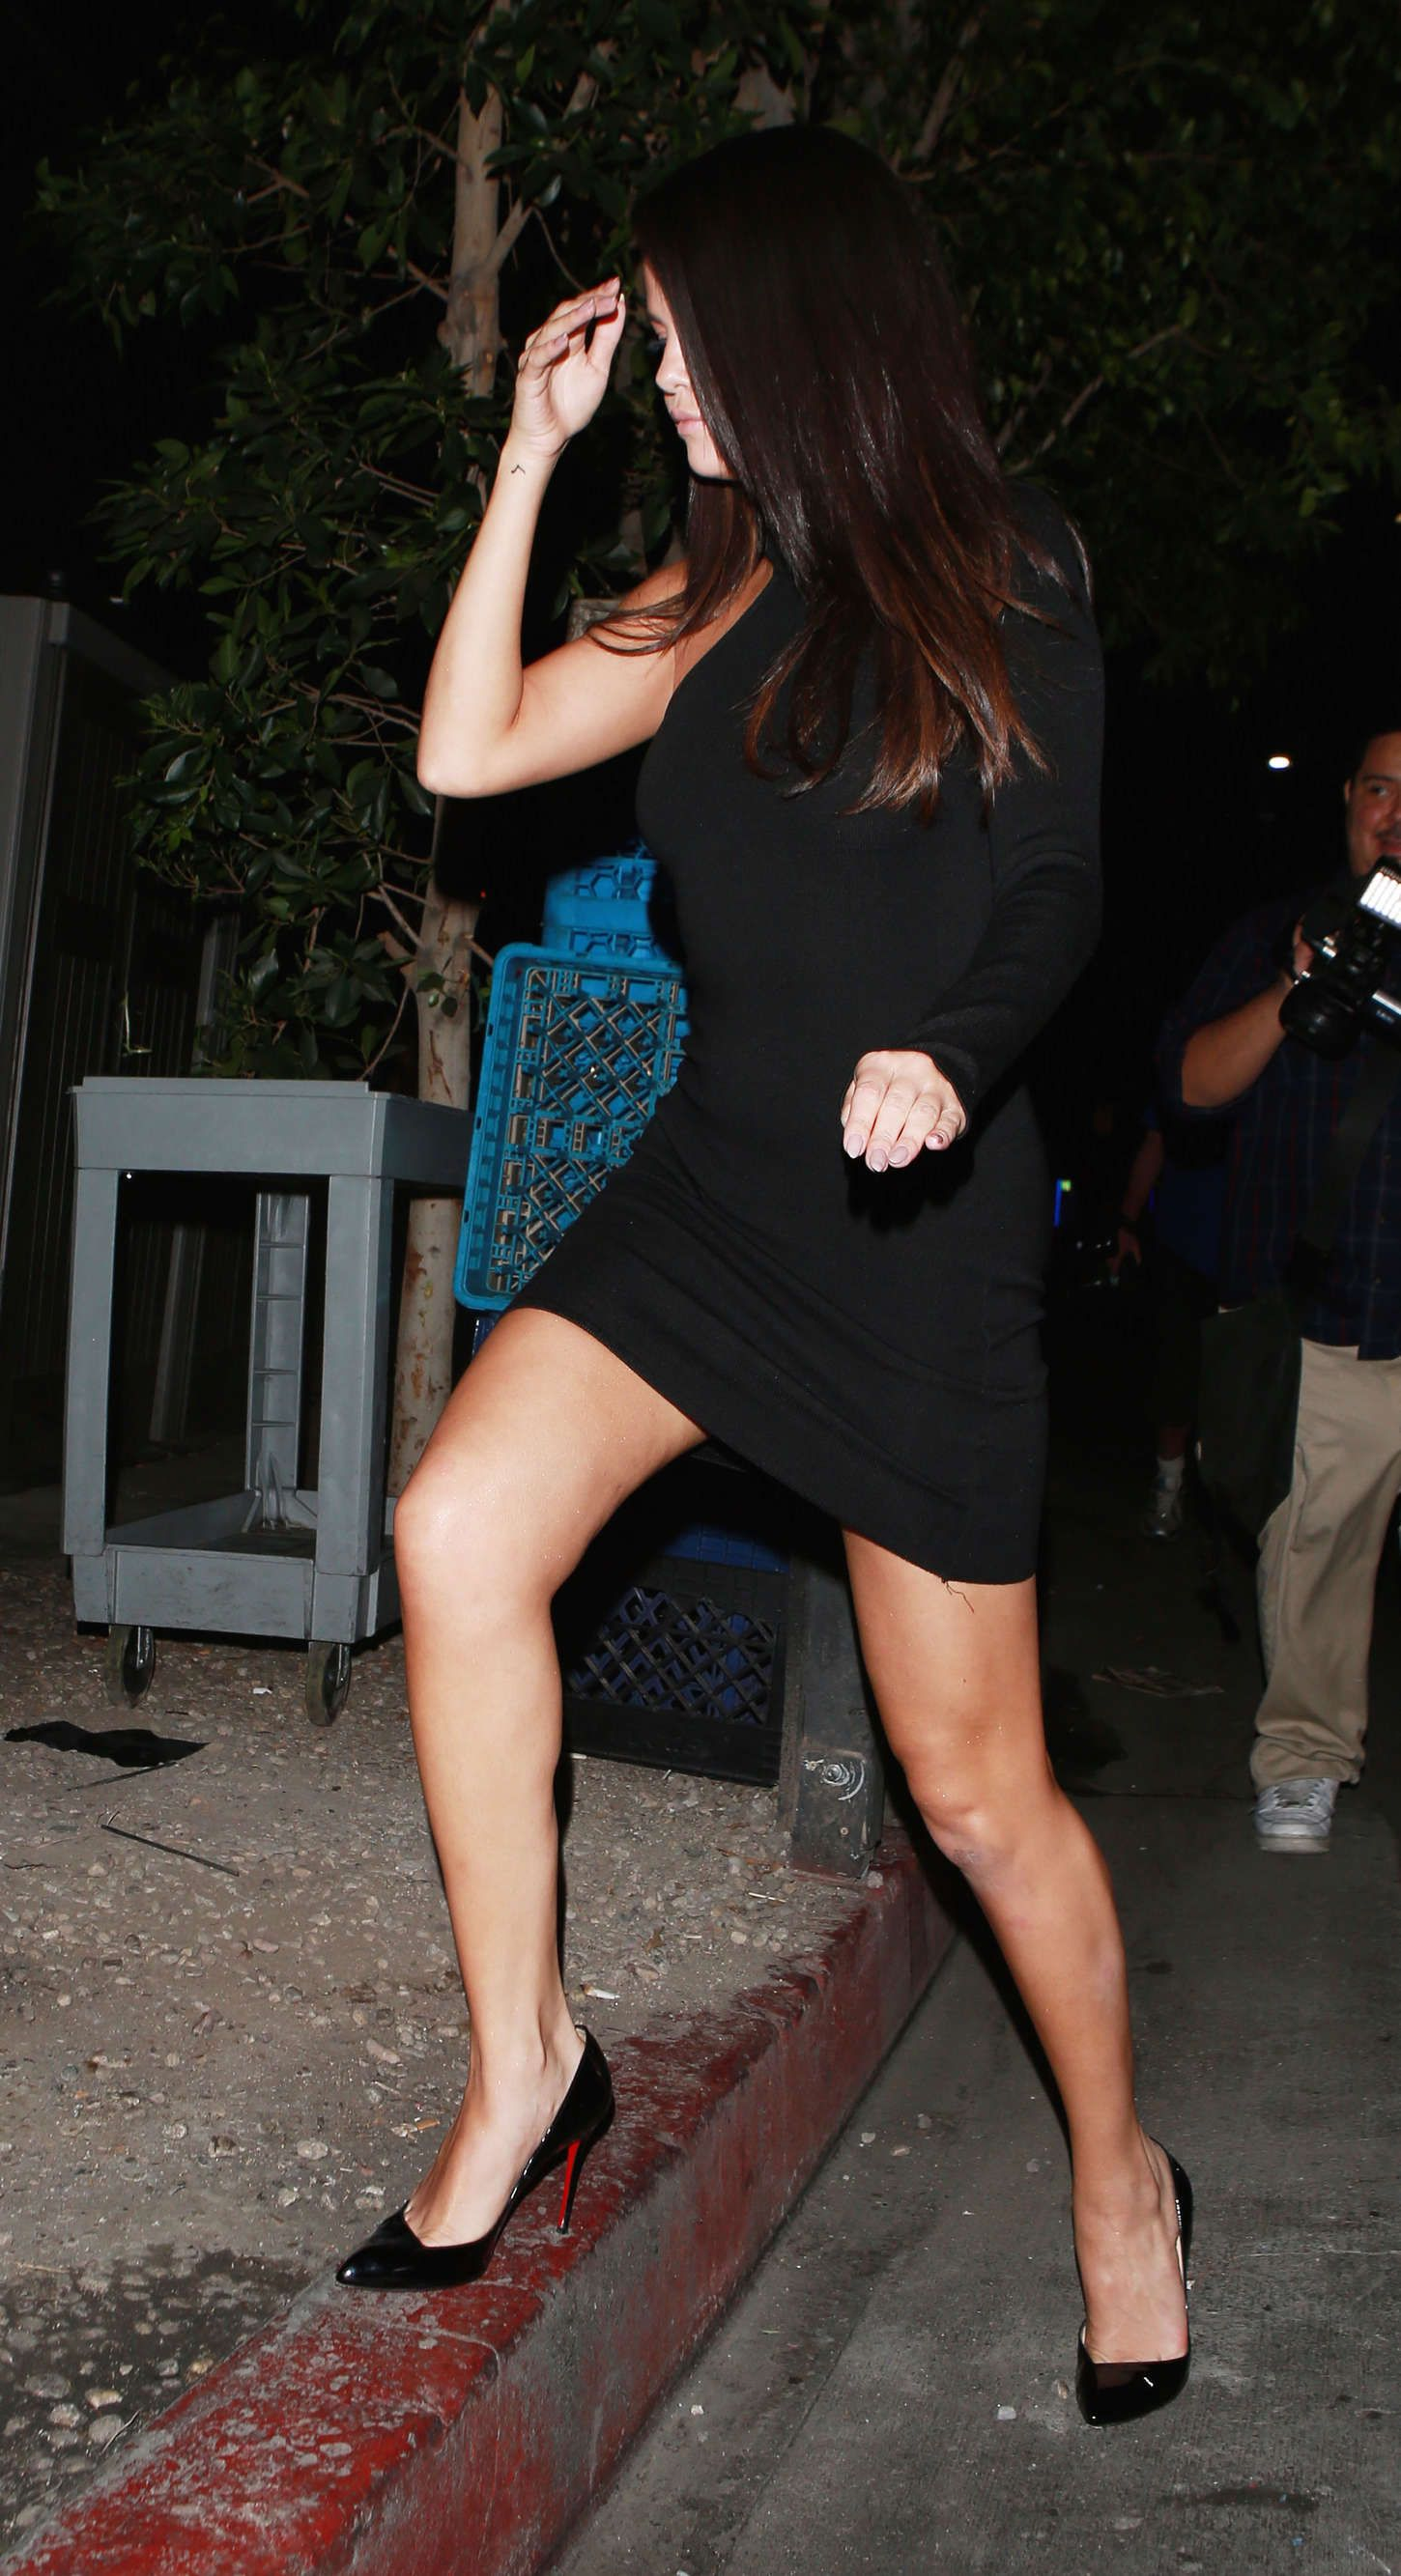 International Celebrities: Selena Gomez at The Nice Guy in Beverly Hills